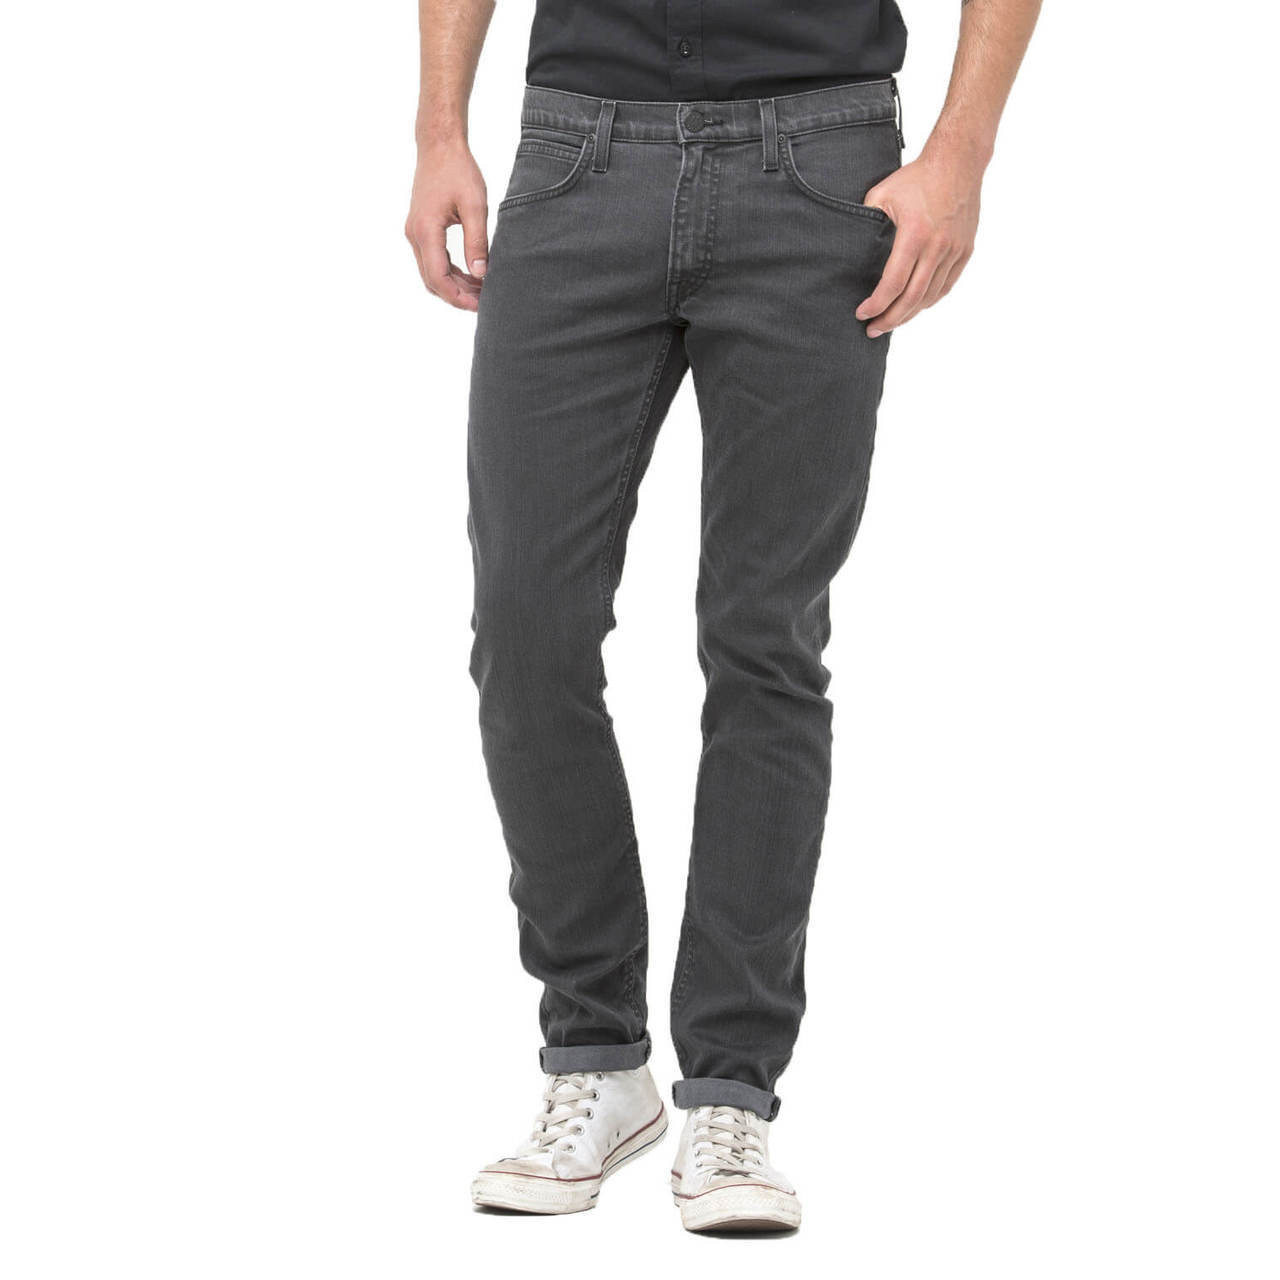 875949d2 Lee Luke Slim Tapered Faded Grey Spark Denim Jeans Image. Double tap to zoom